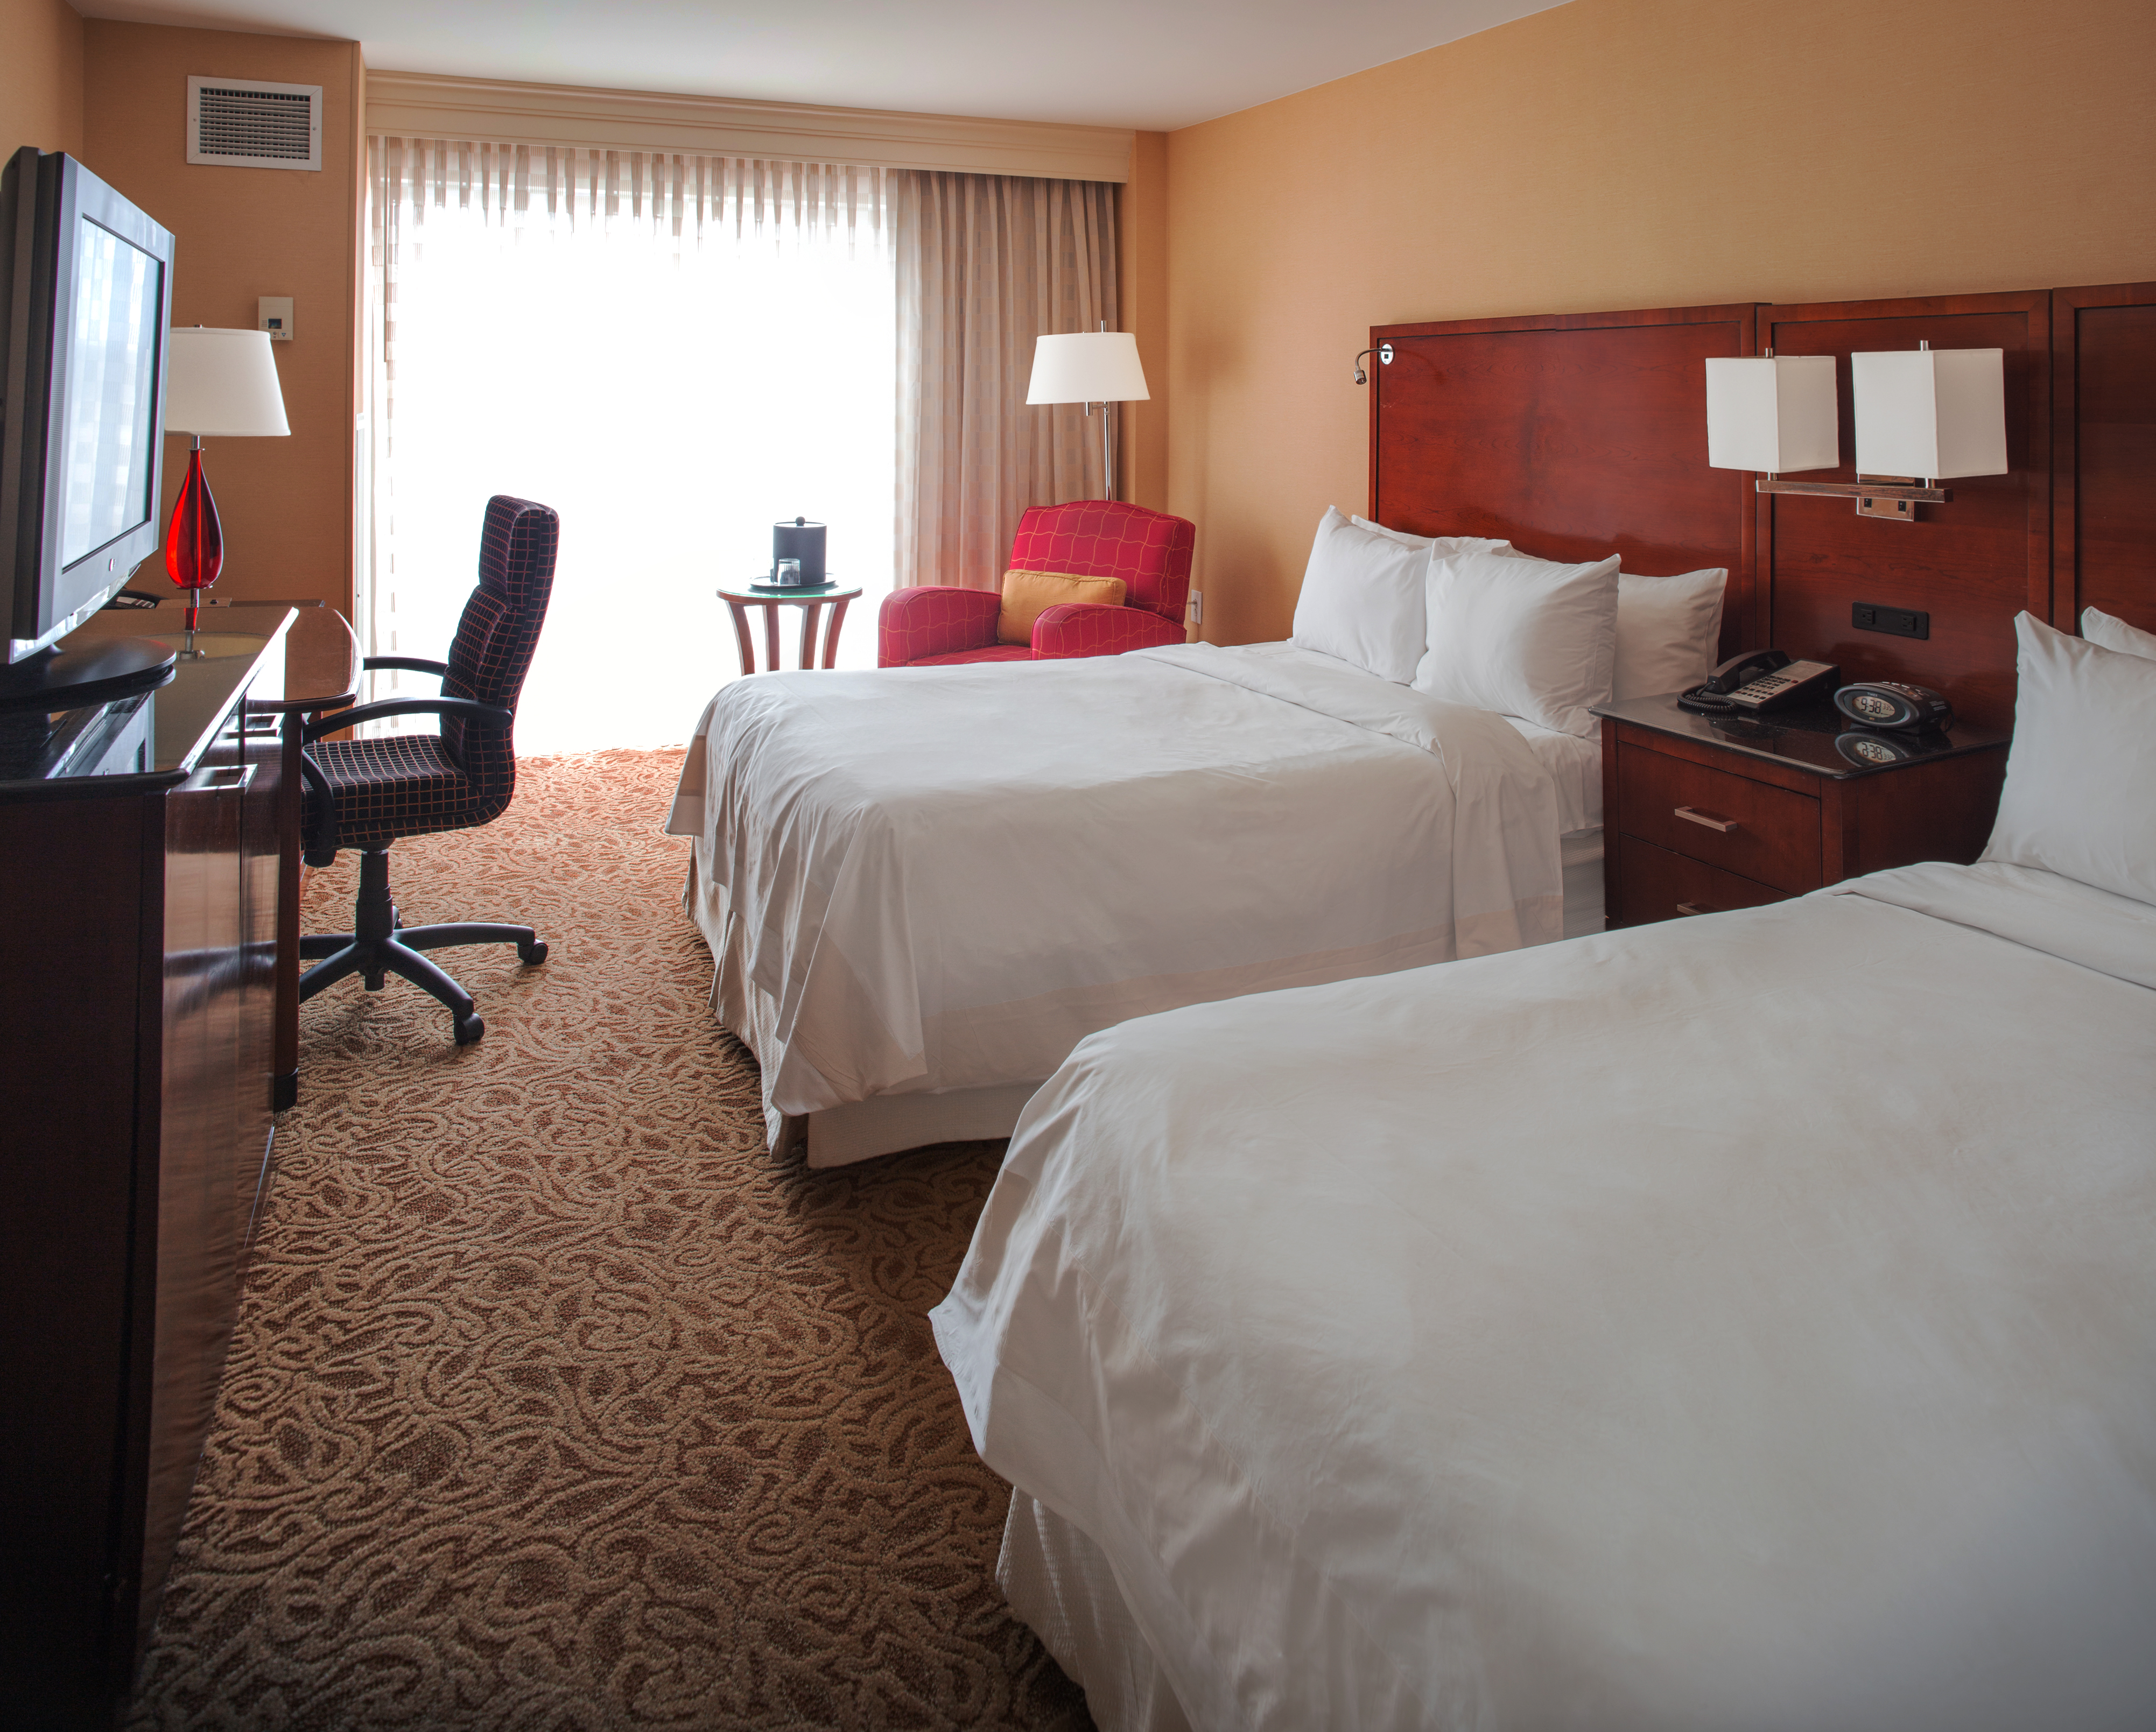 Hotel Rooms in Chesapeake VA - Suites in Chesapeake VA